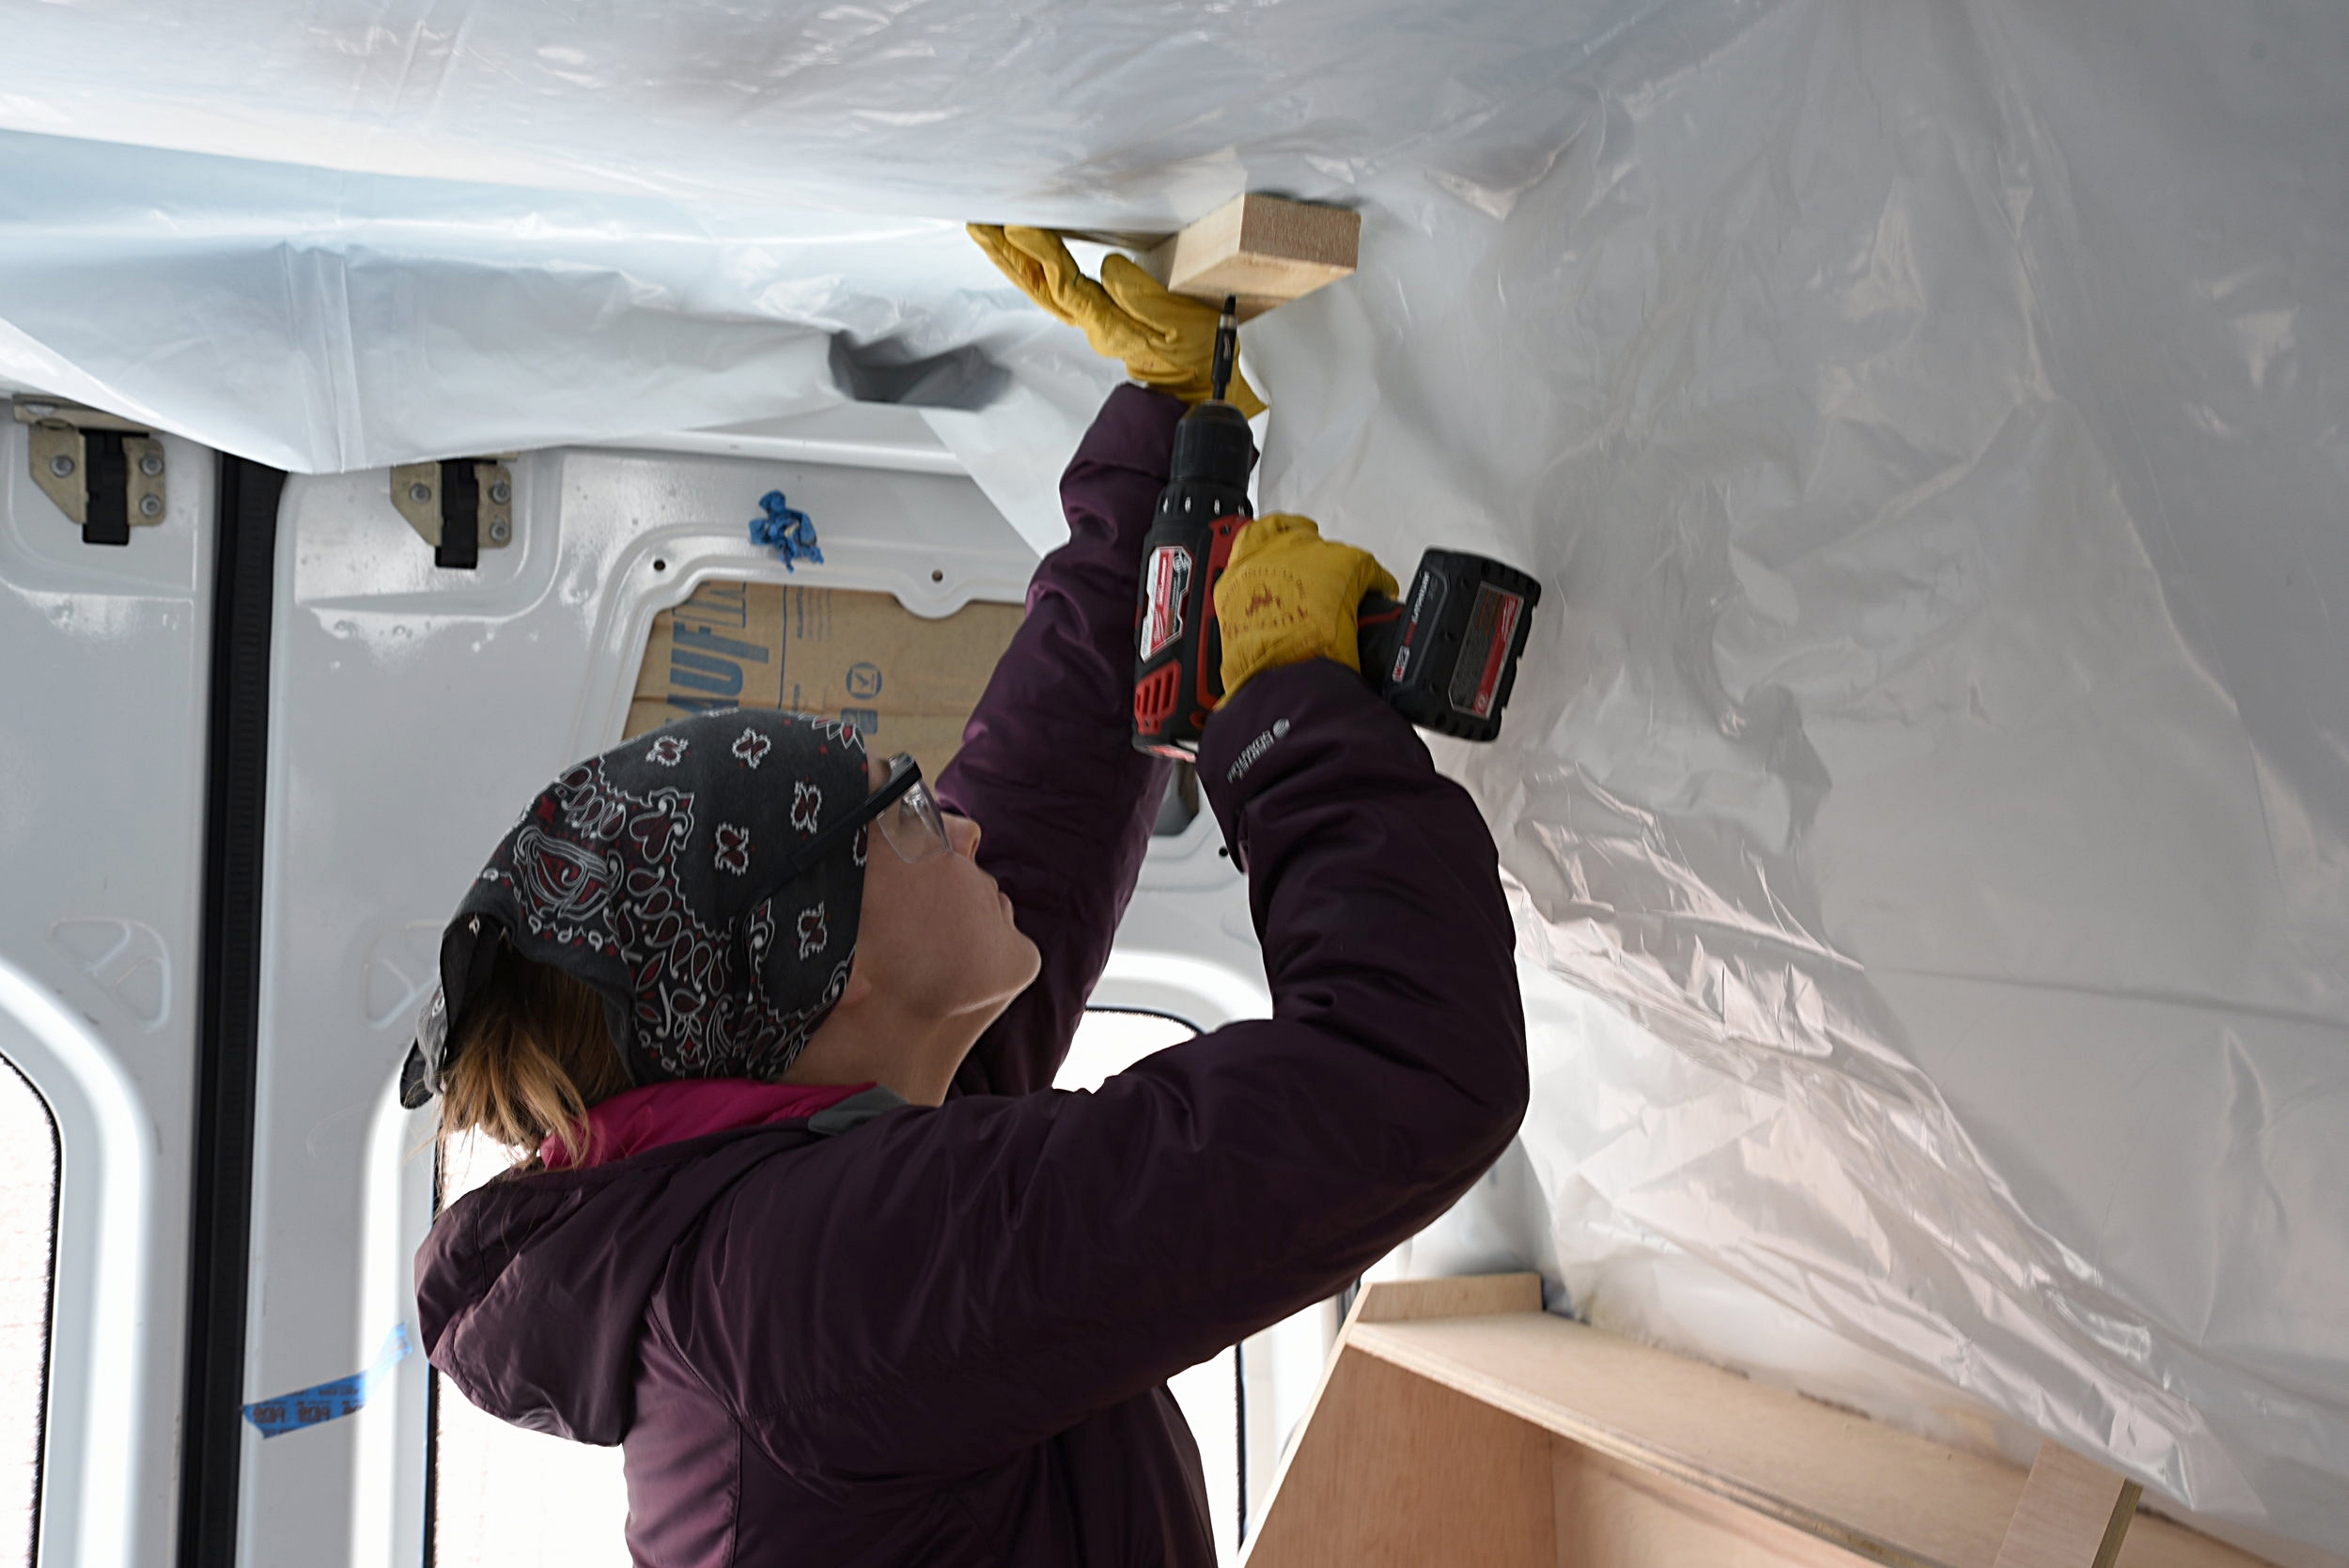 Kaylee uses some scrap wood to hold up the plastic sheeting until we are ready to install our ceiling panels.